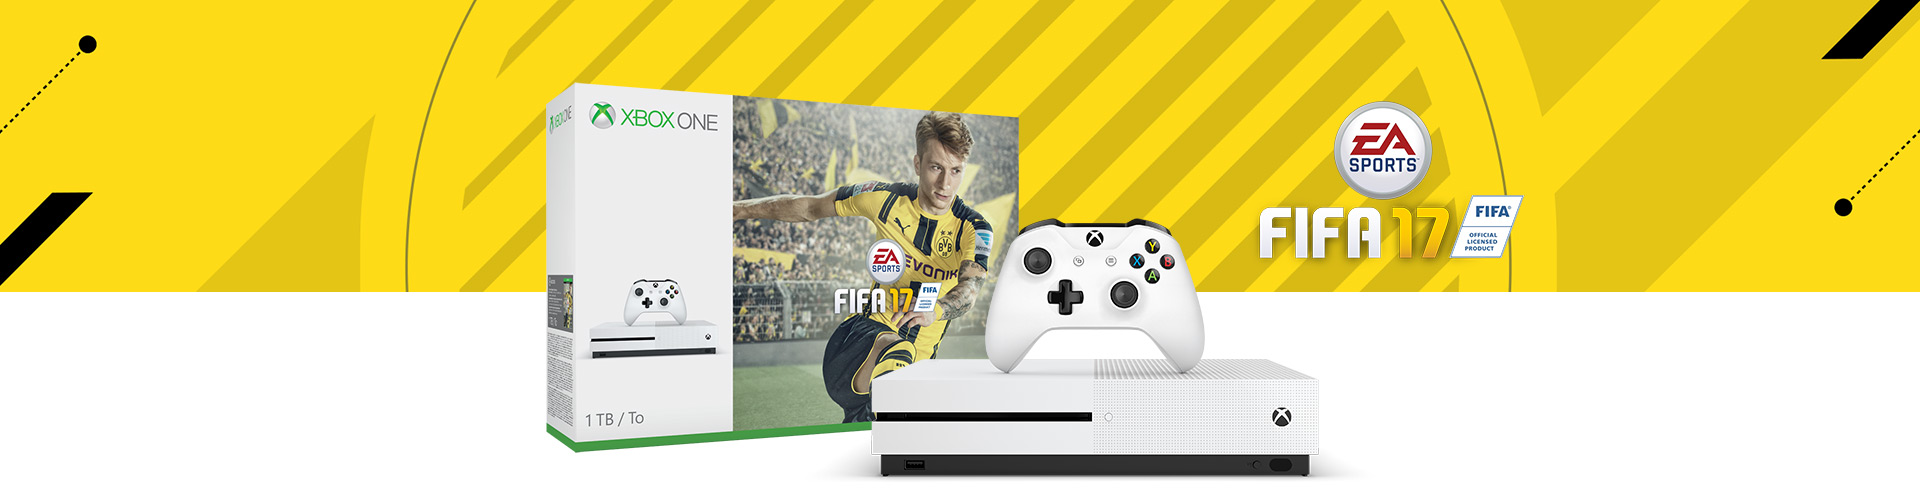 xbox one s fifa 17 bundle 1tb xbox. Black Bedroom Furniture Sets. Home Design Ideas